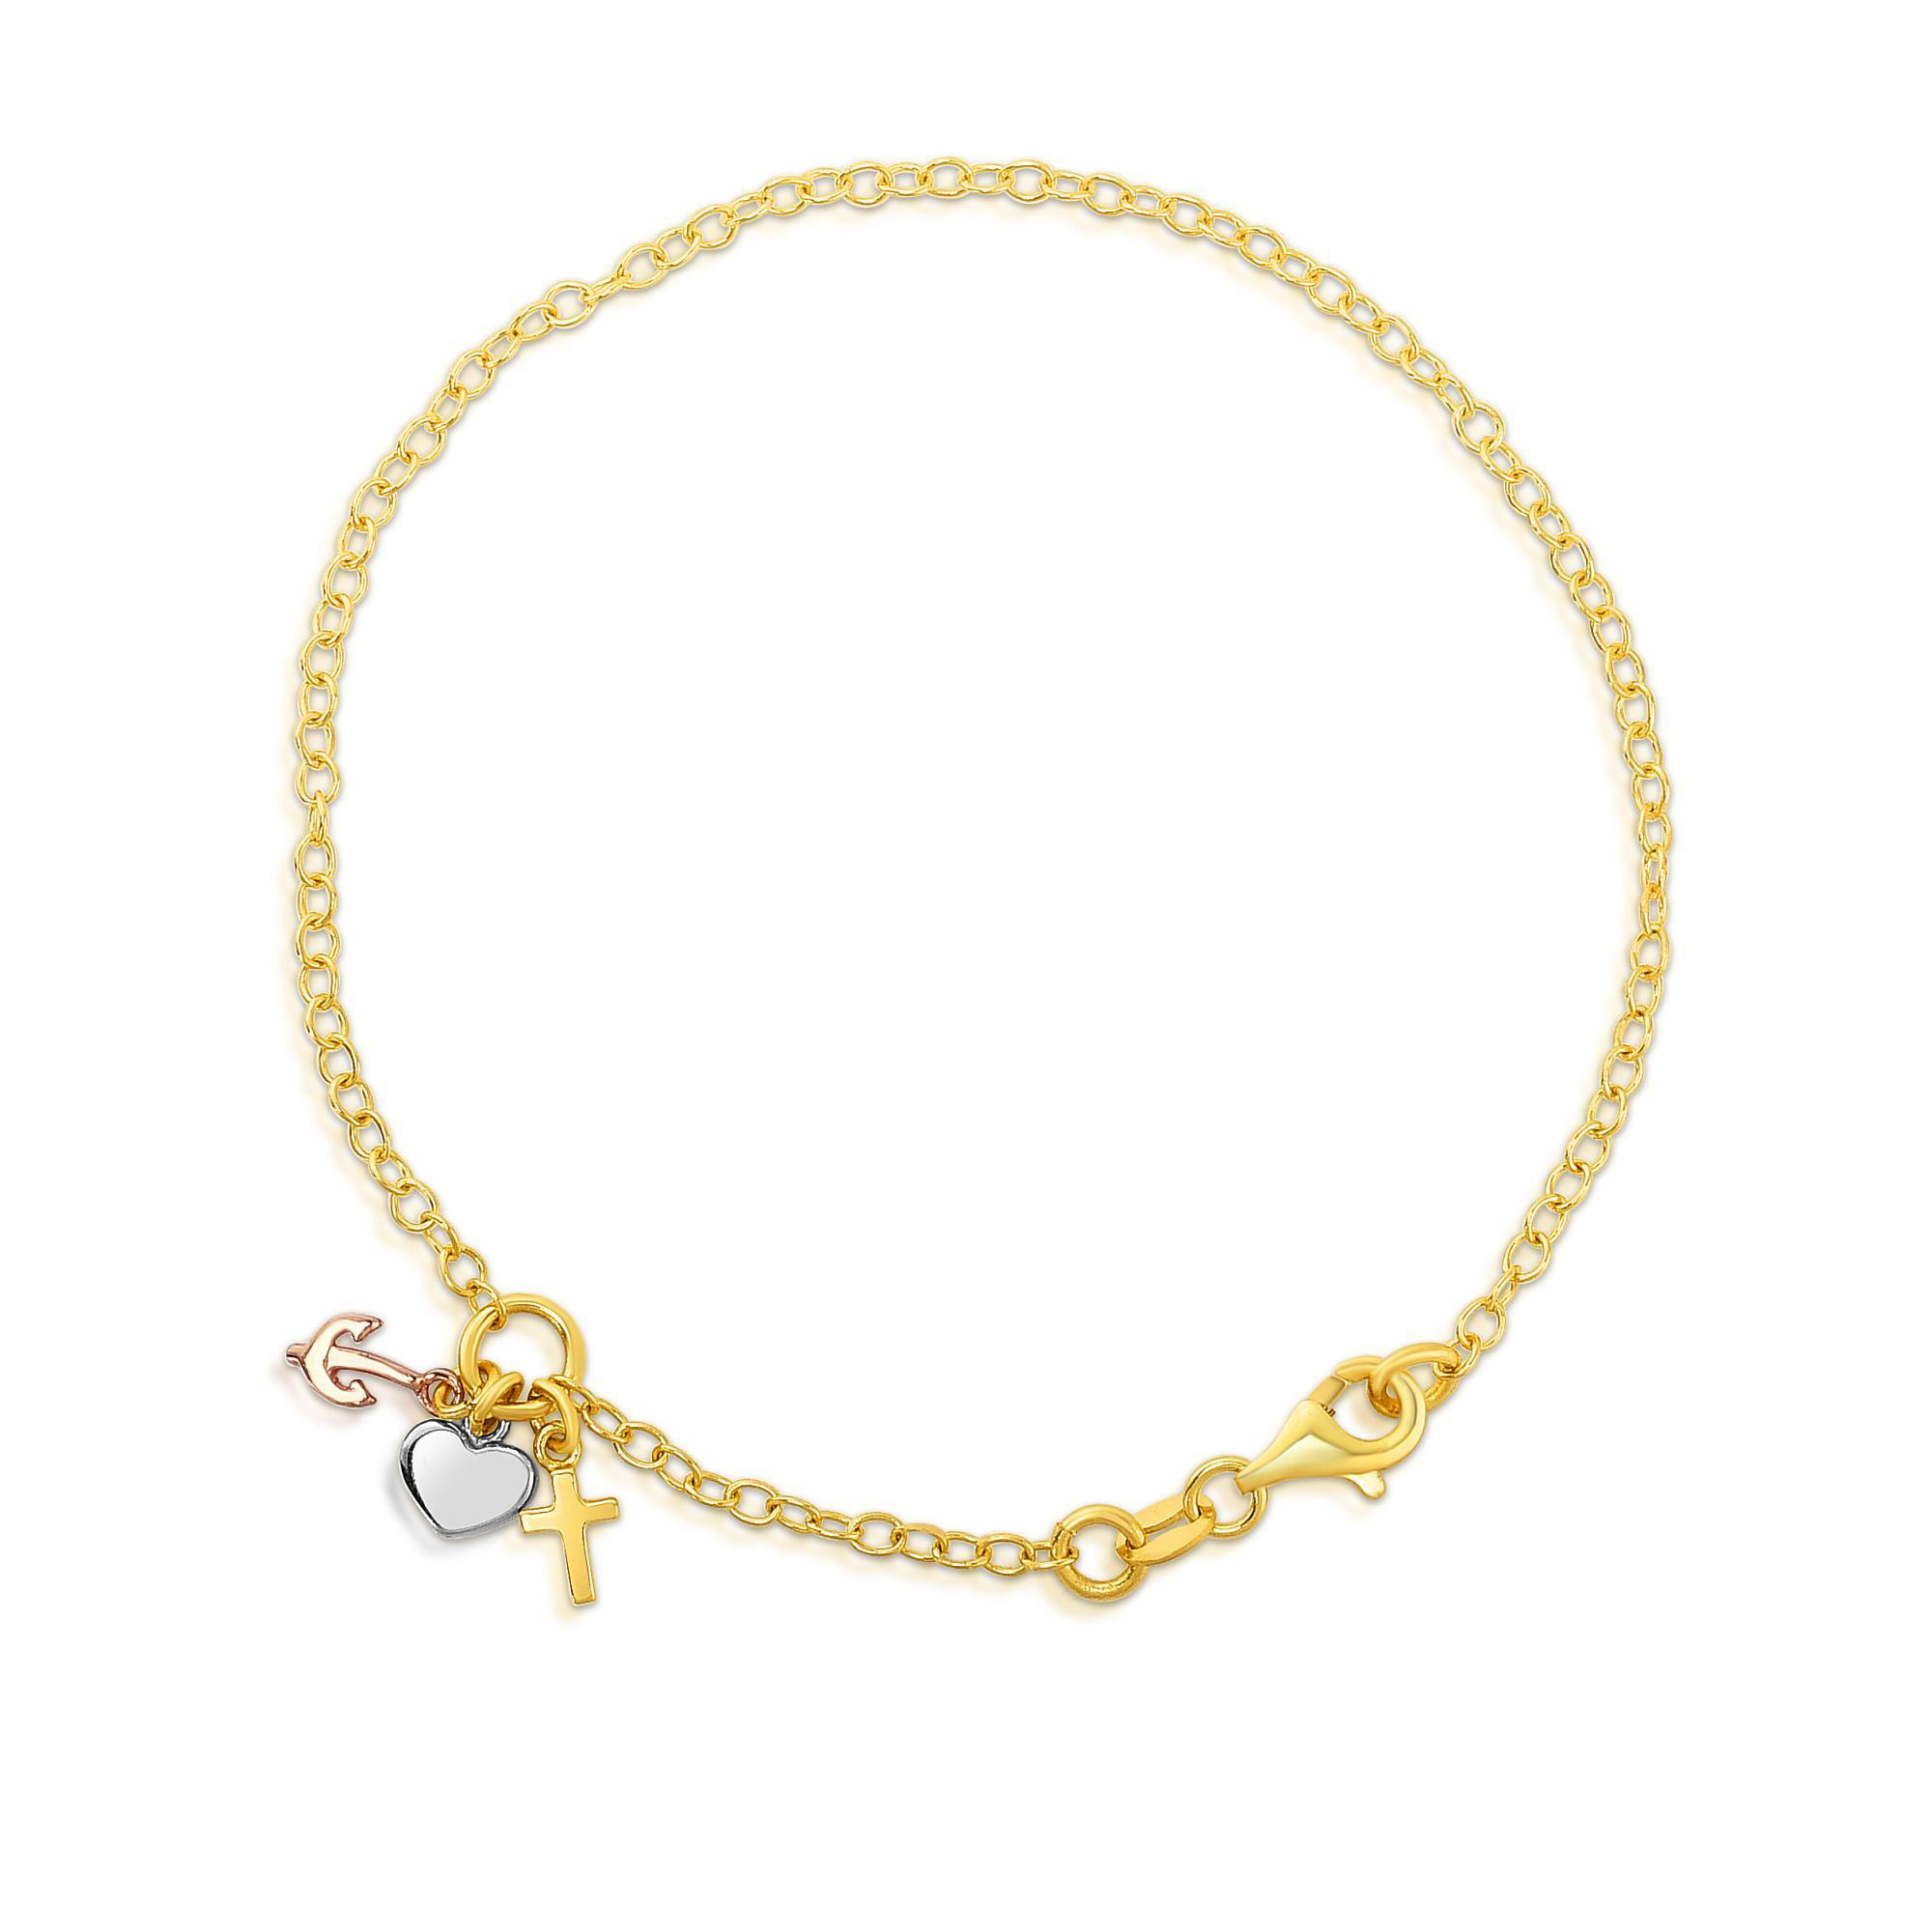 14k Yellow Gold Chain Heart Lock And Anchor Bracelet, 7.5″